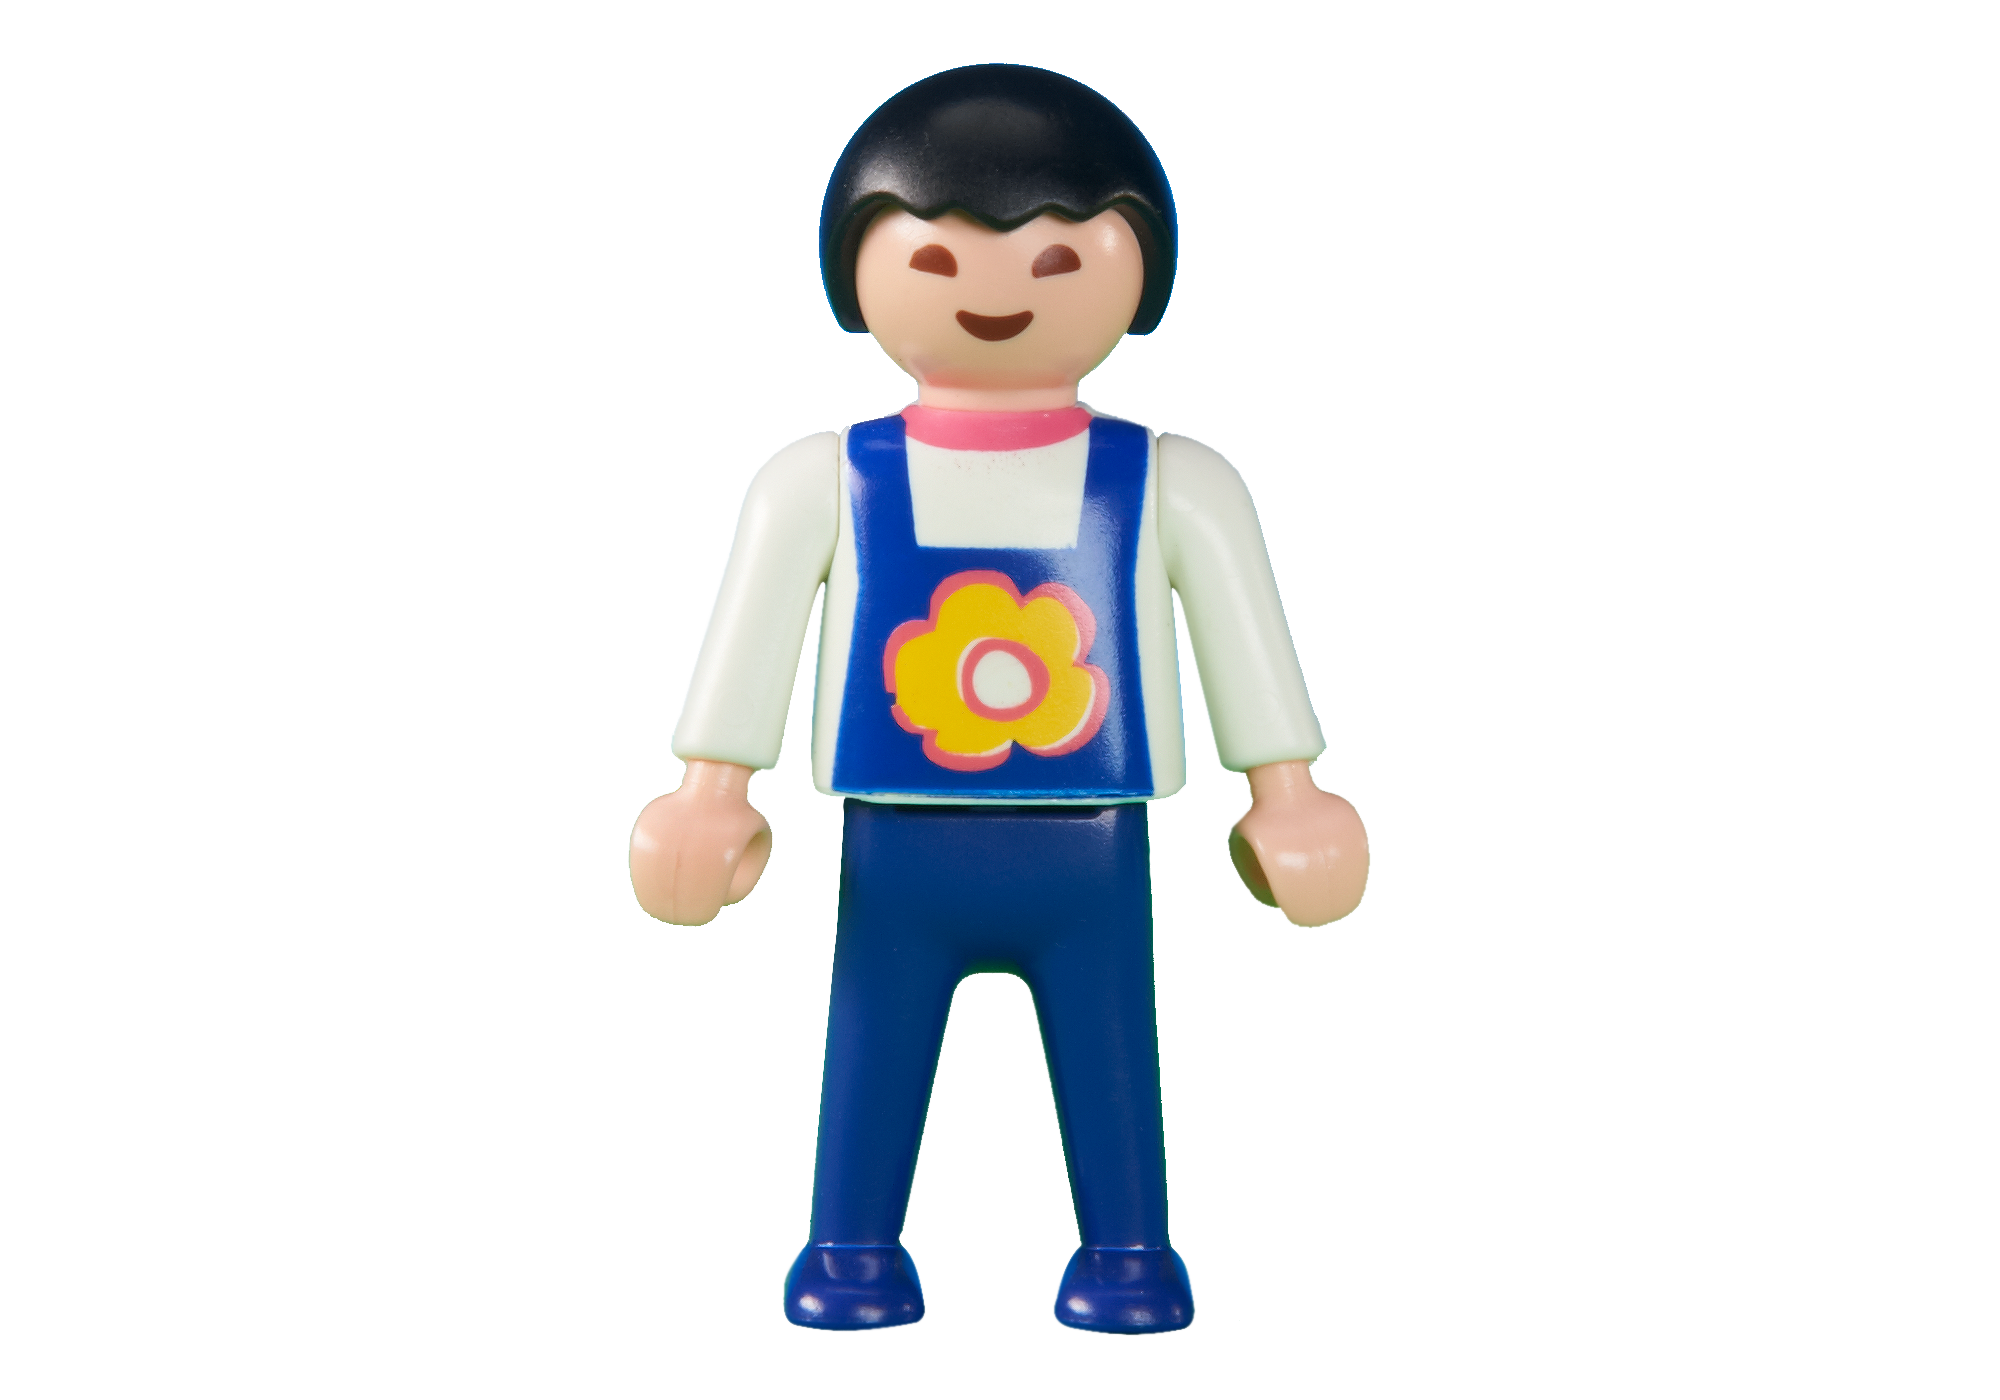 http://media.playmobil.com/i/playmobil/30102300_product_detail/Grundfigur Junge